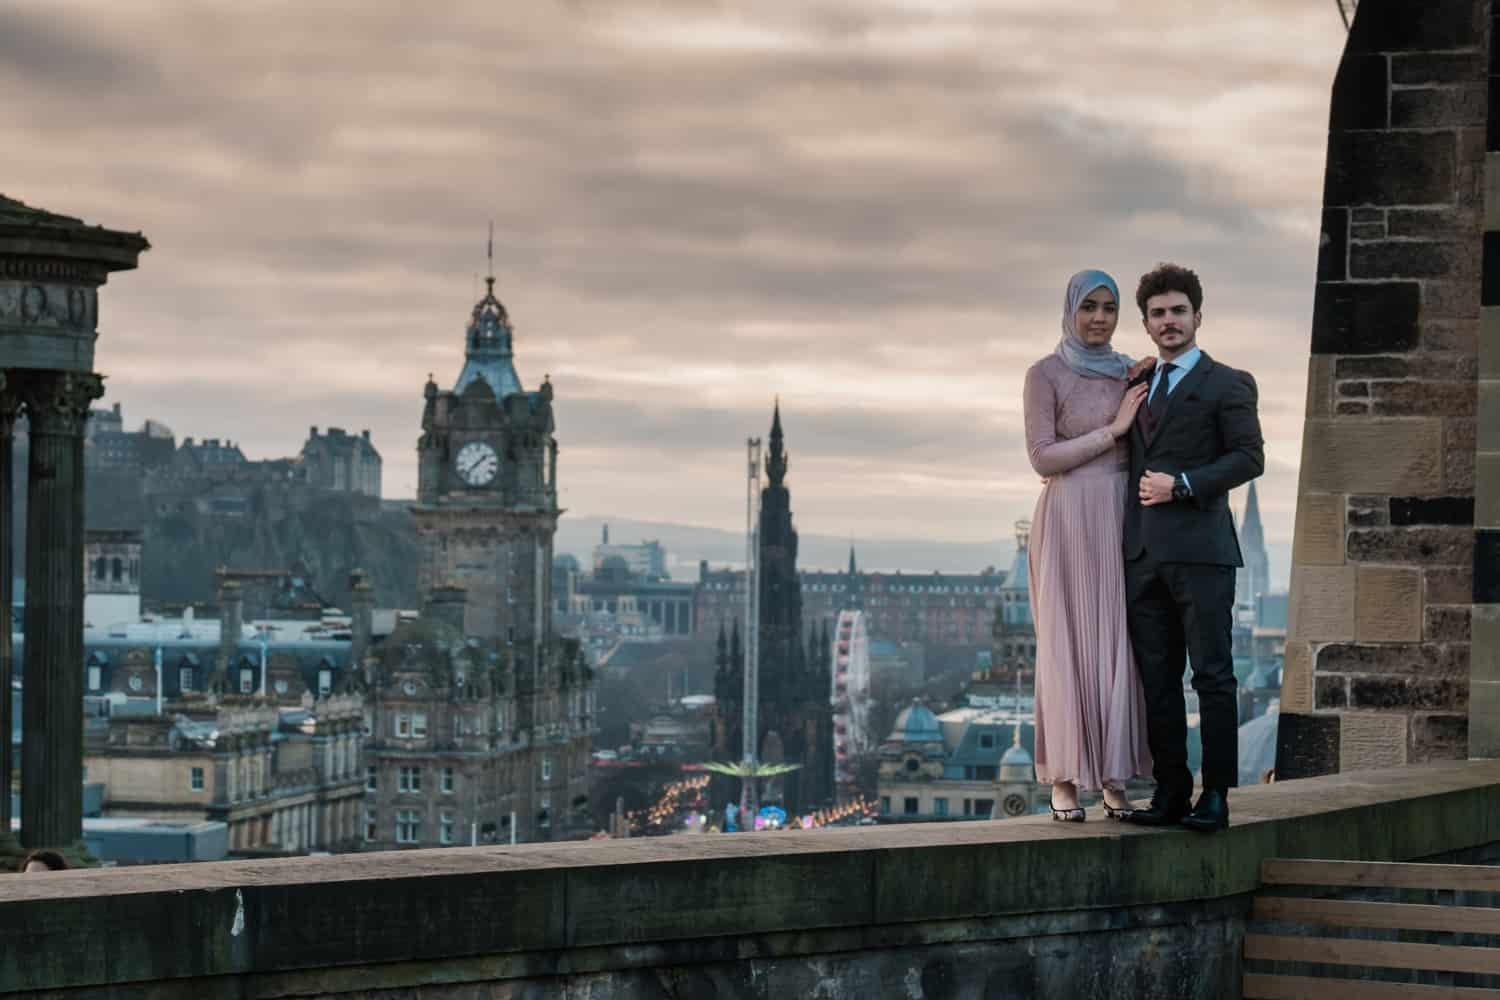 romatic places in Edinburgh to propose - calton hill